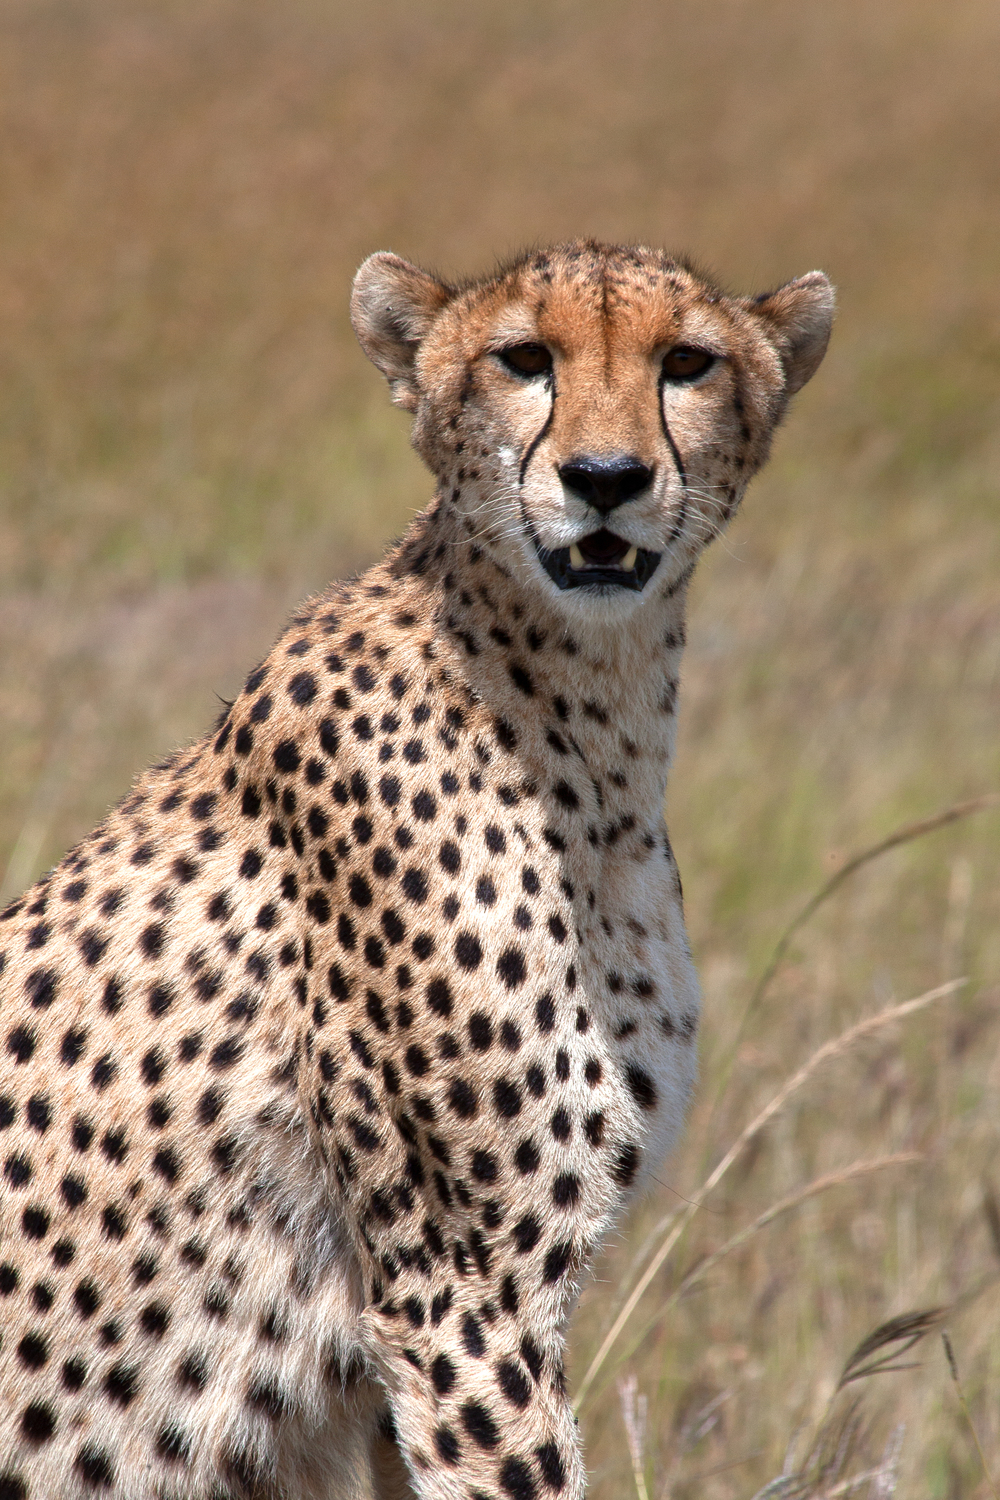 Mara cheetah looking at camera